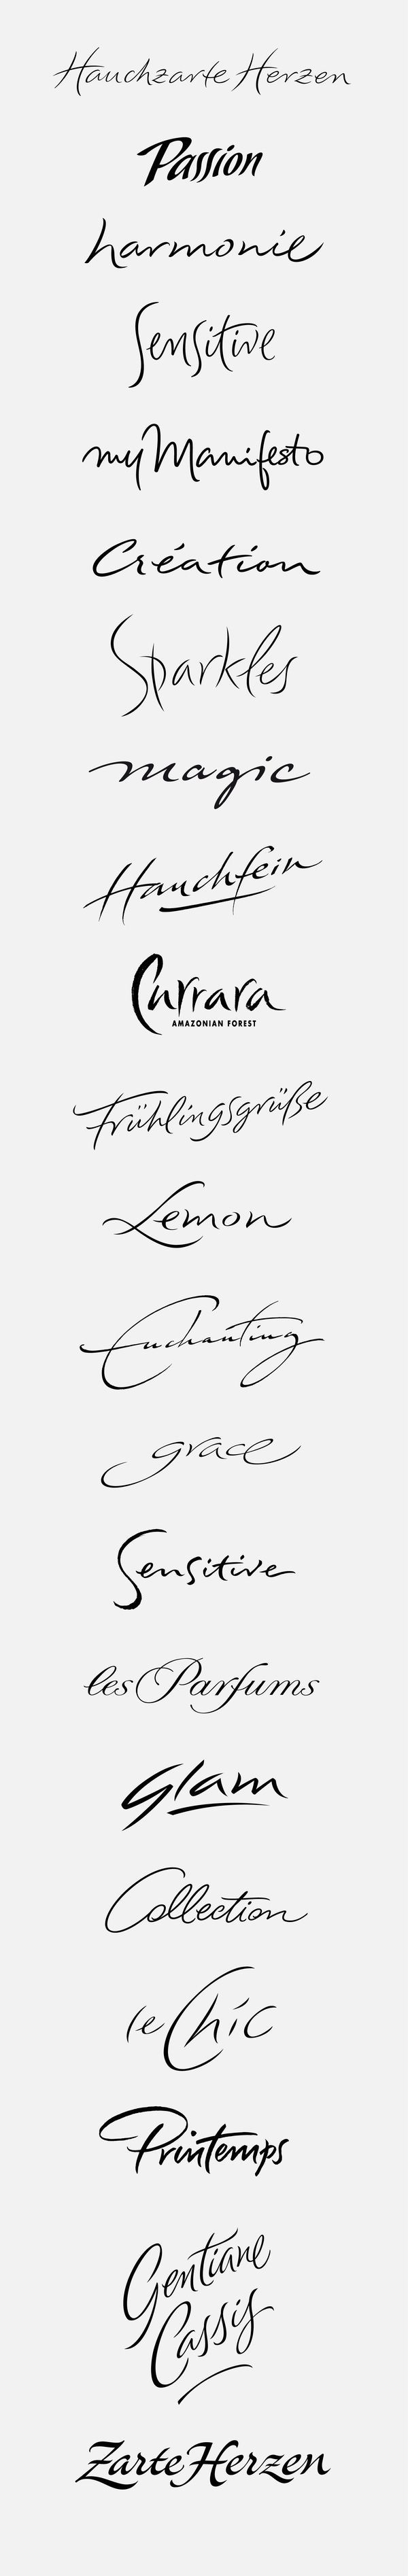 logotypes: emotional, sensual by Peter Becker, by way of Behance  www.arcreactions........  Have a look at more at the image